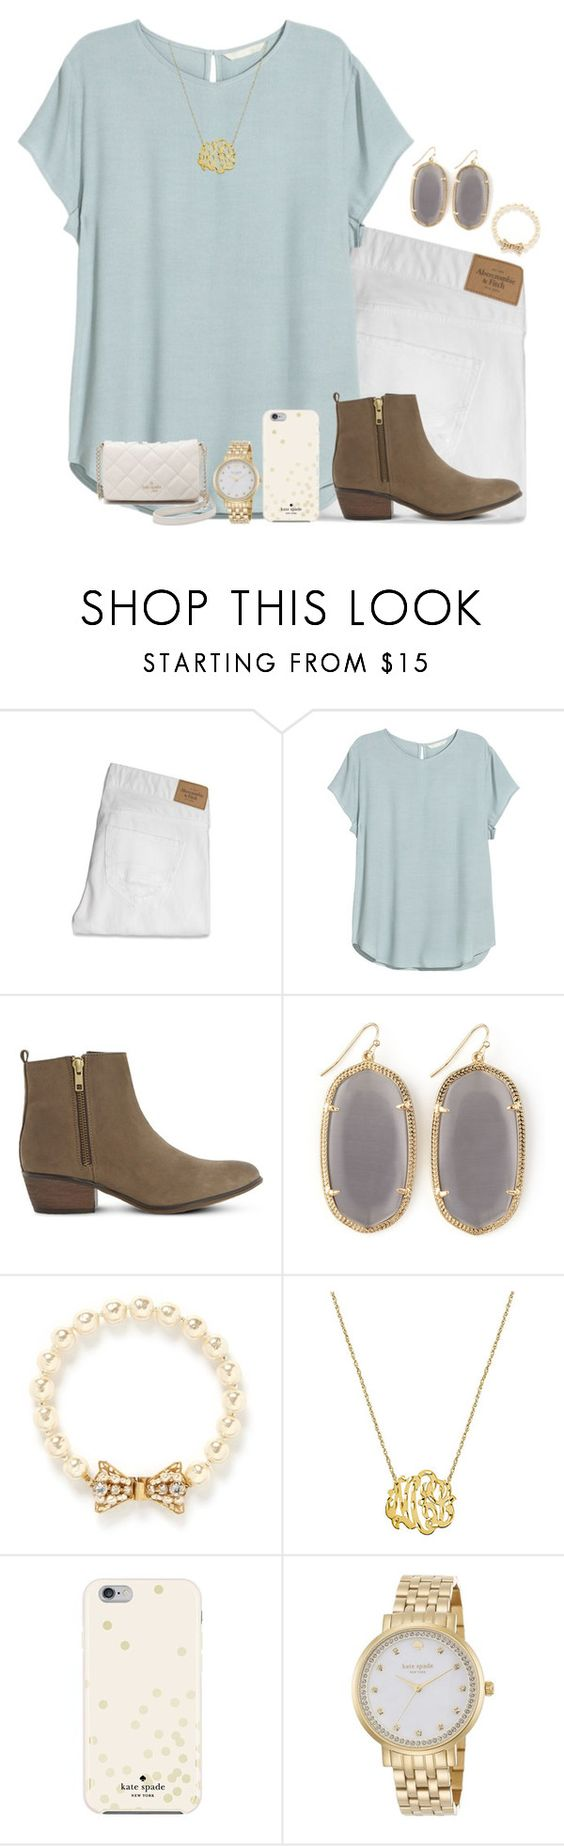 """""""Darling I'm a nightmare dressed like a daydream """" by remiii13 ❤ liked on Polyvore featuring Abercrombie & Fitch, H&M, Steve Madden, Kendra Scott, Miriam Haskell and Kate Spade"""